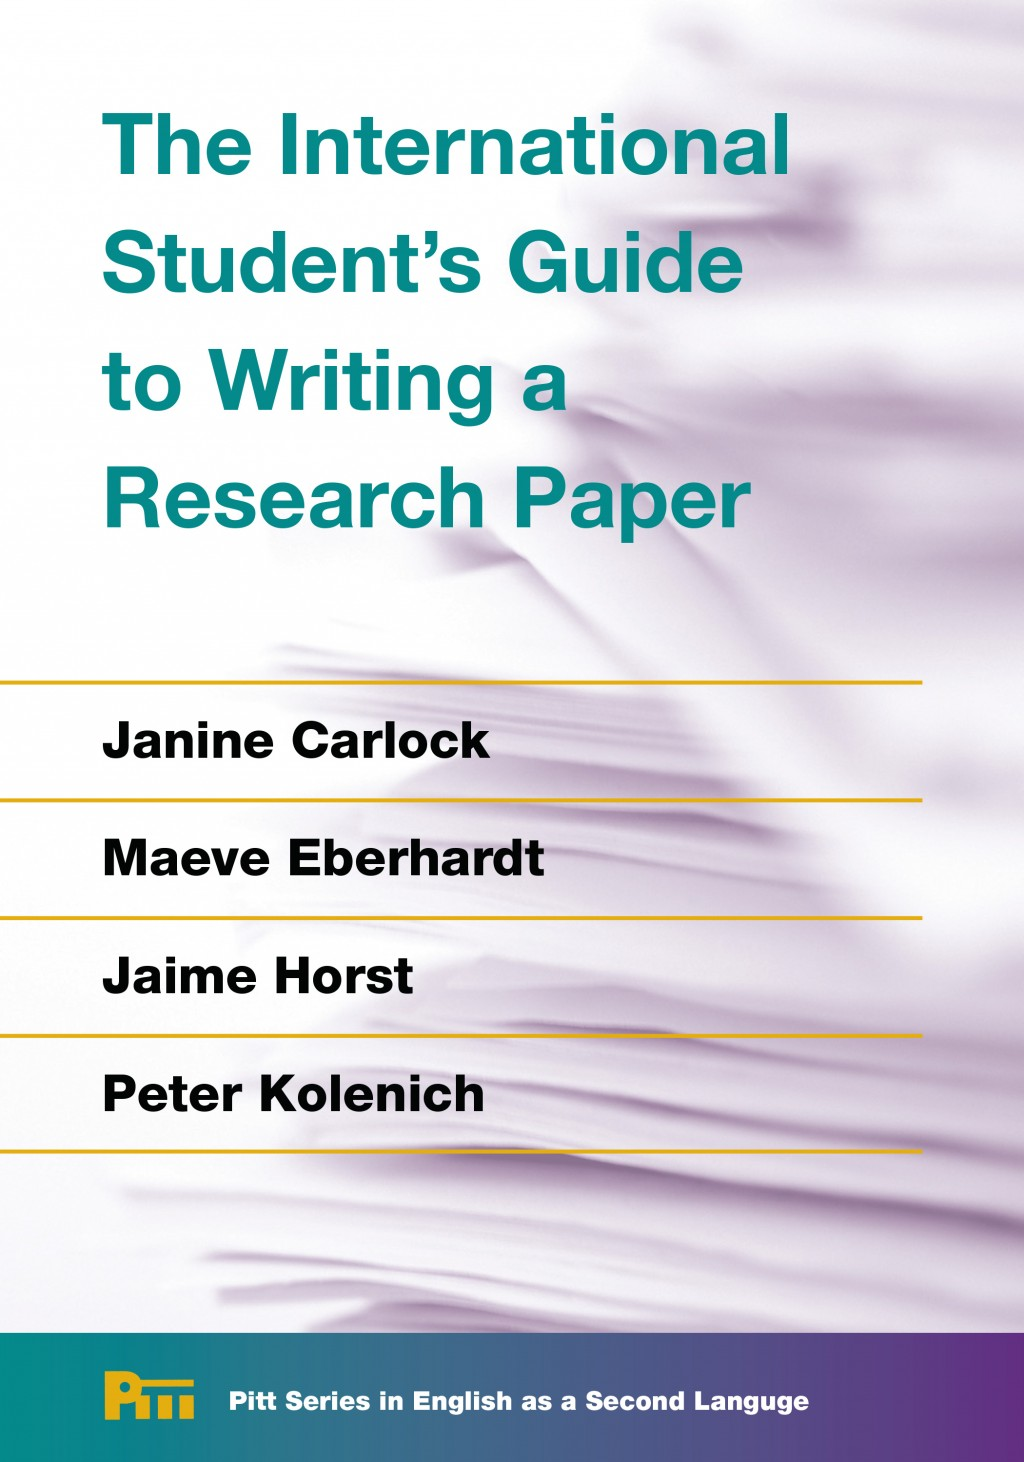 013 Writing The Research Paper Phenomenal Papers A Complete Guide 16th Edition Pdf Free Handbook Scientific Large